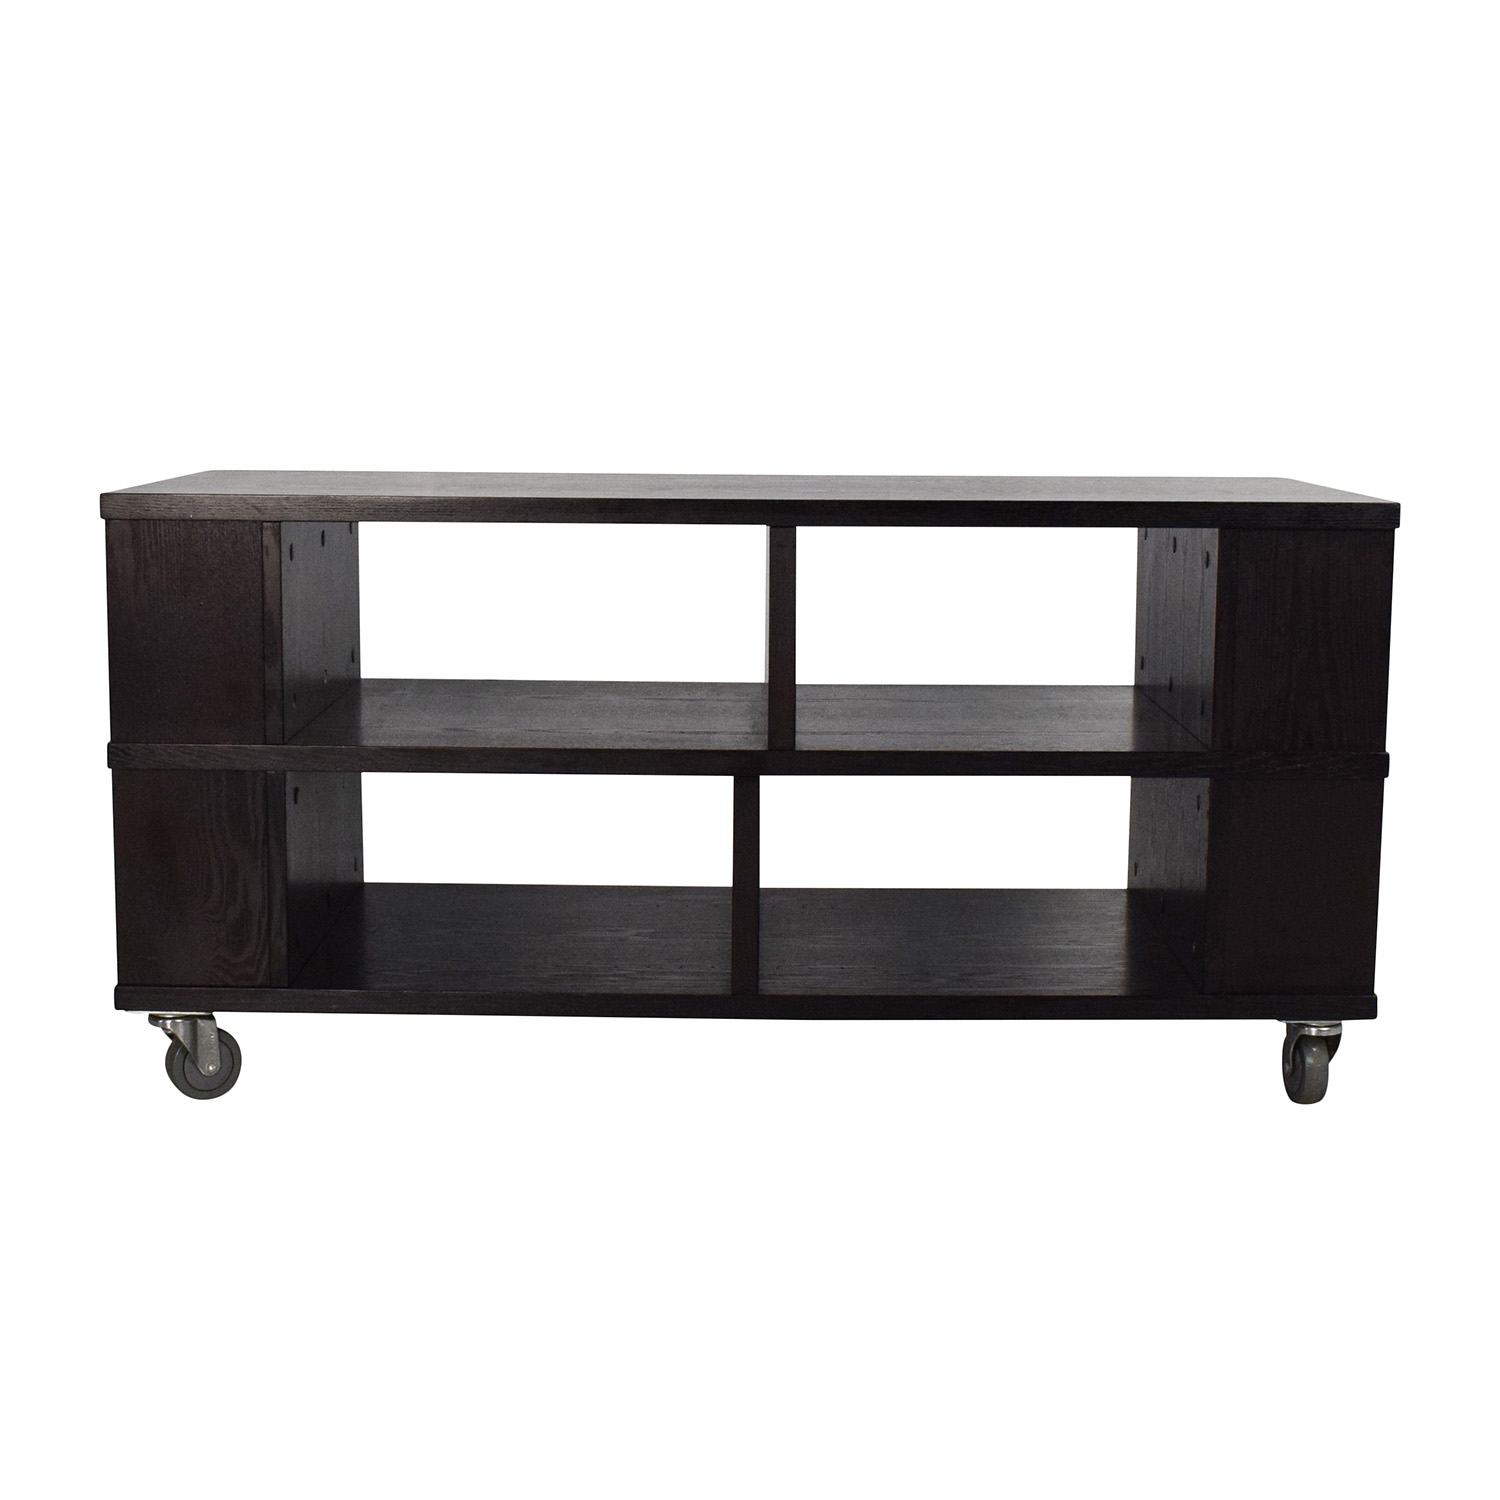 Crate and Barrel Crate & Barrel Elements Media Cart Console nj